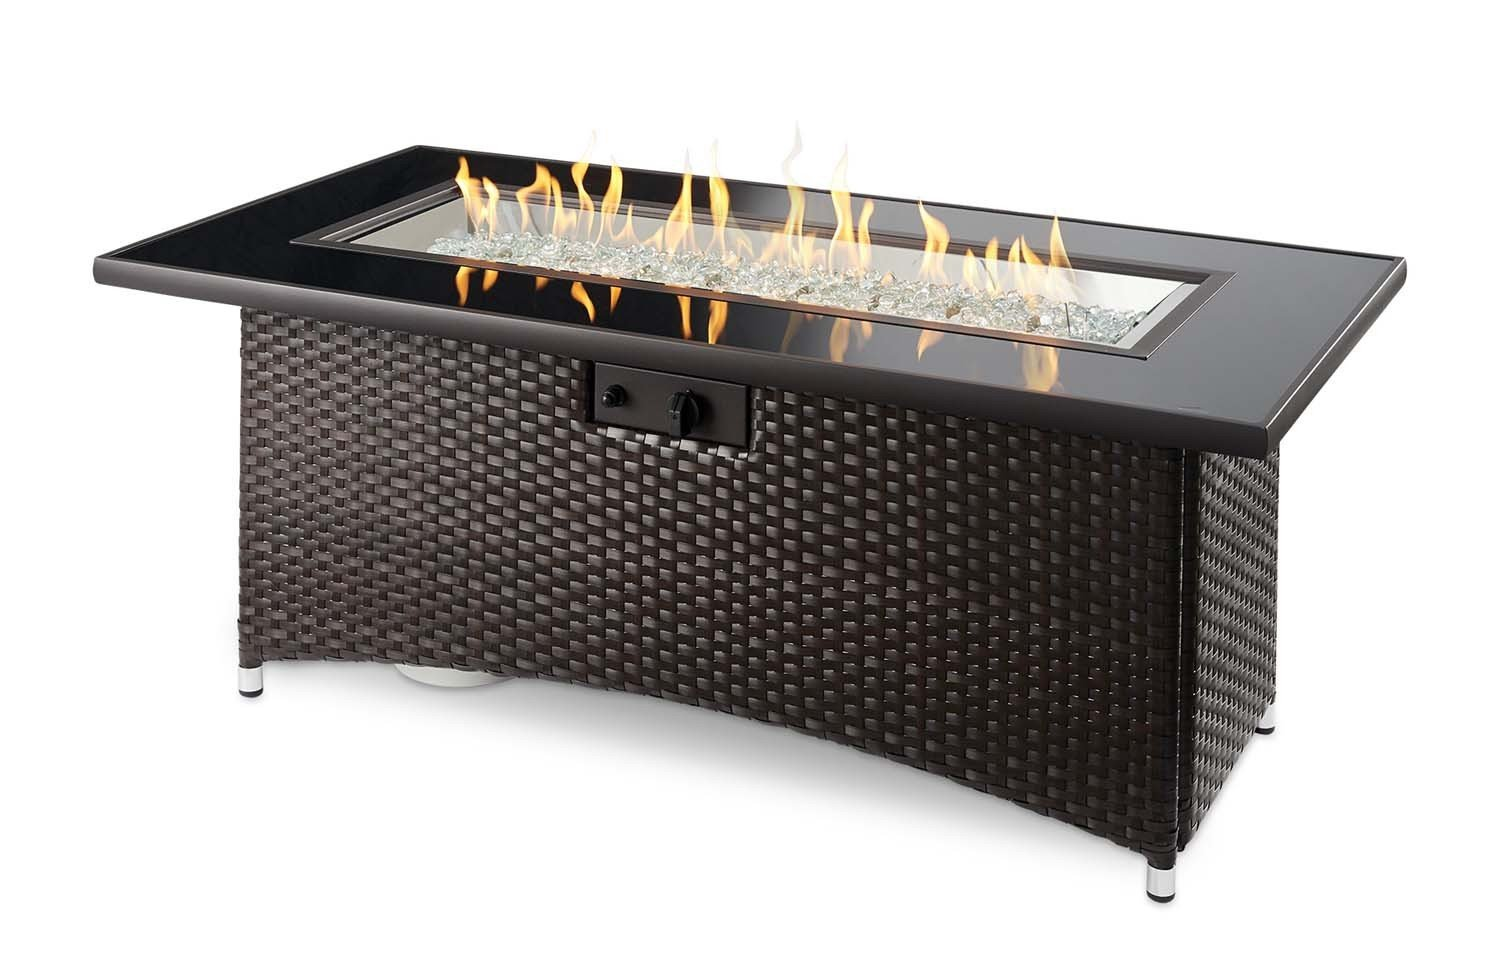 Outdoor Great Room Montego Crystal Fire Pit Coffee Table with Balsam Wicker Base by The Outdoor GreatRoom Company